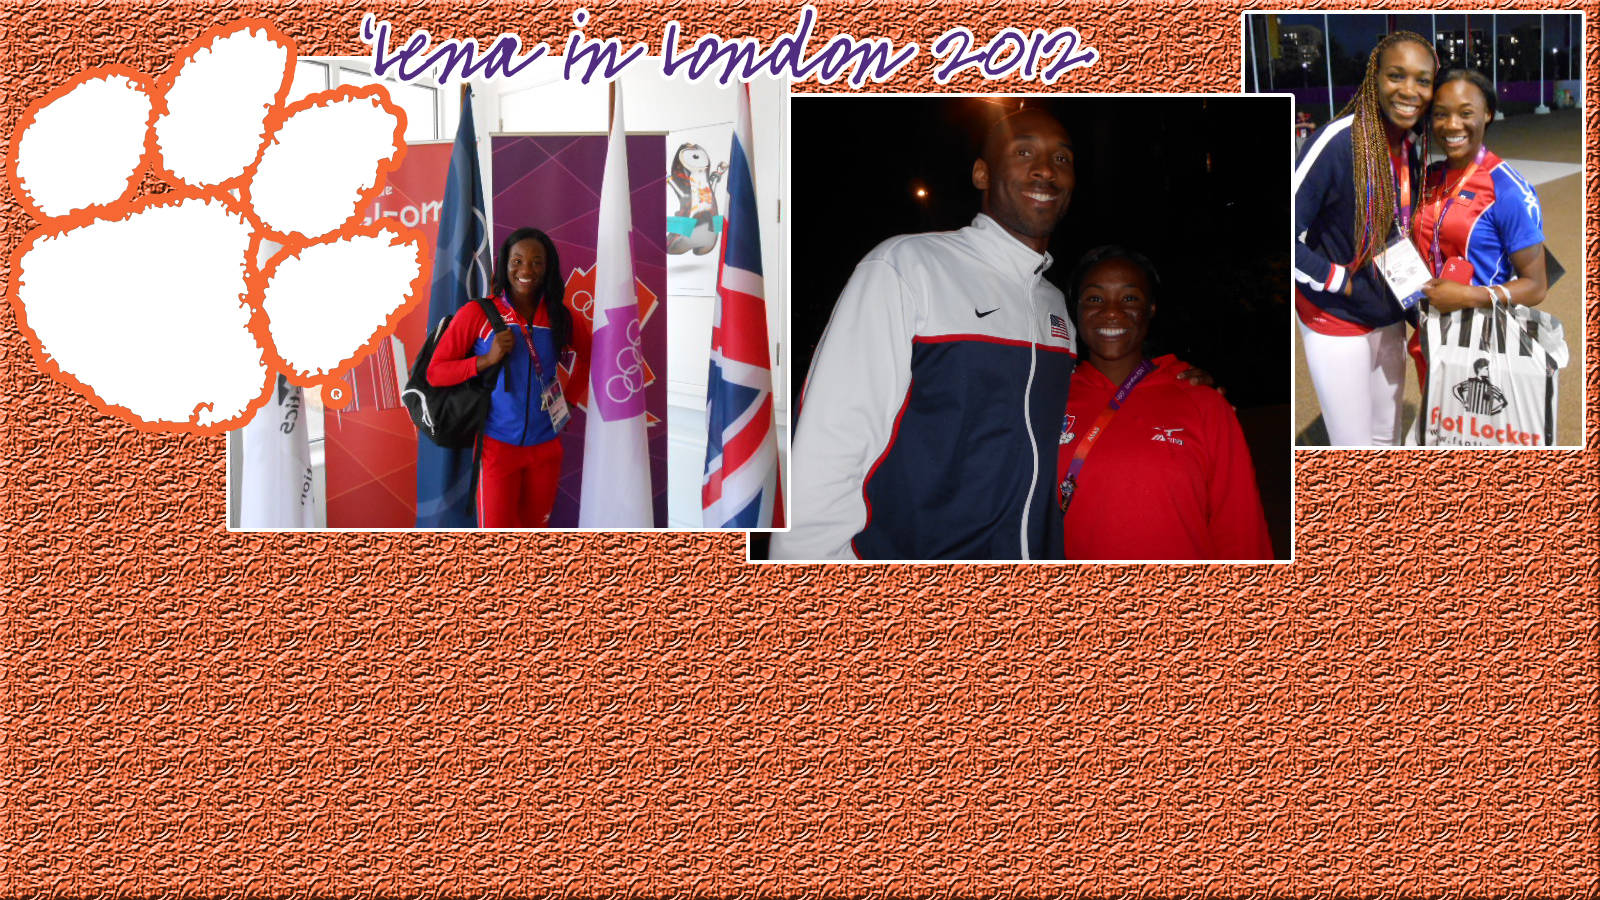 'Lena in London 2012